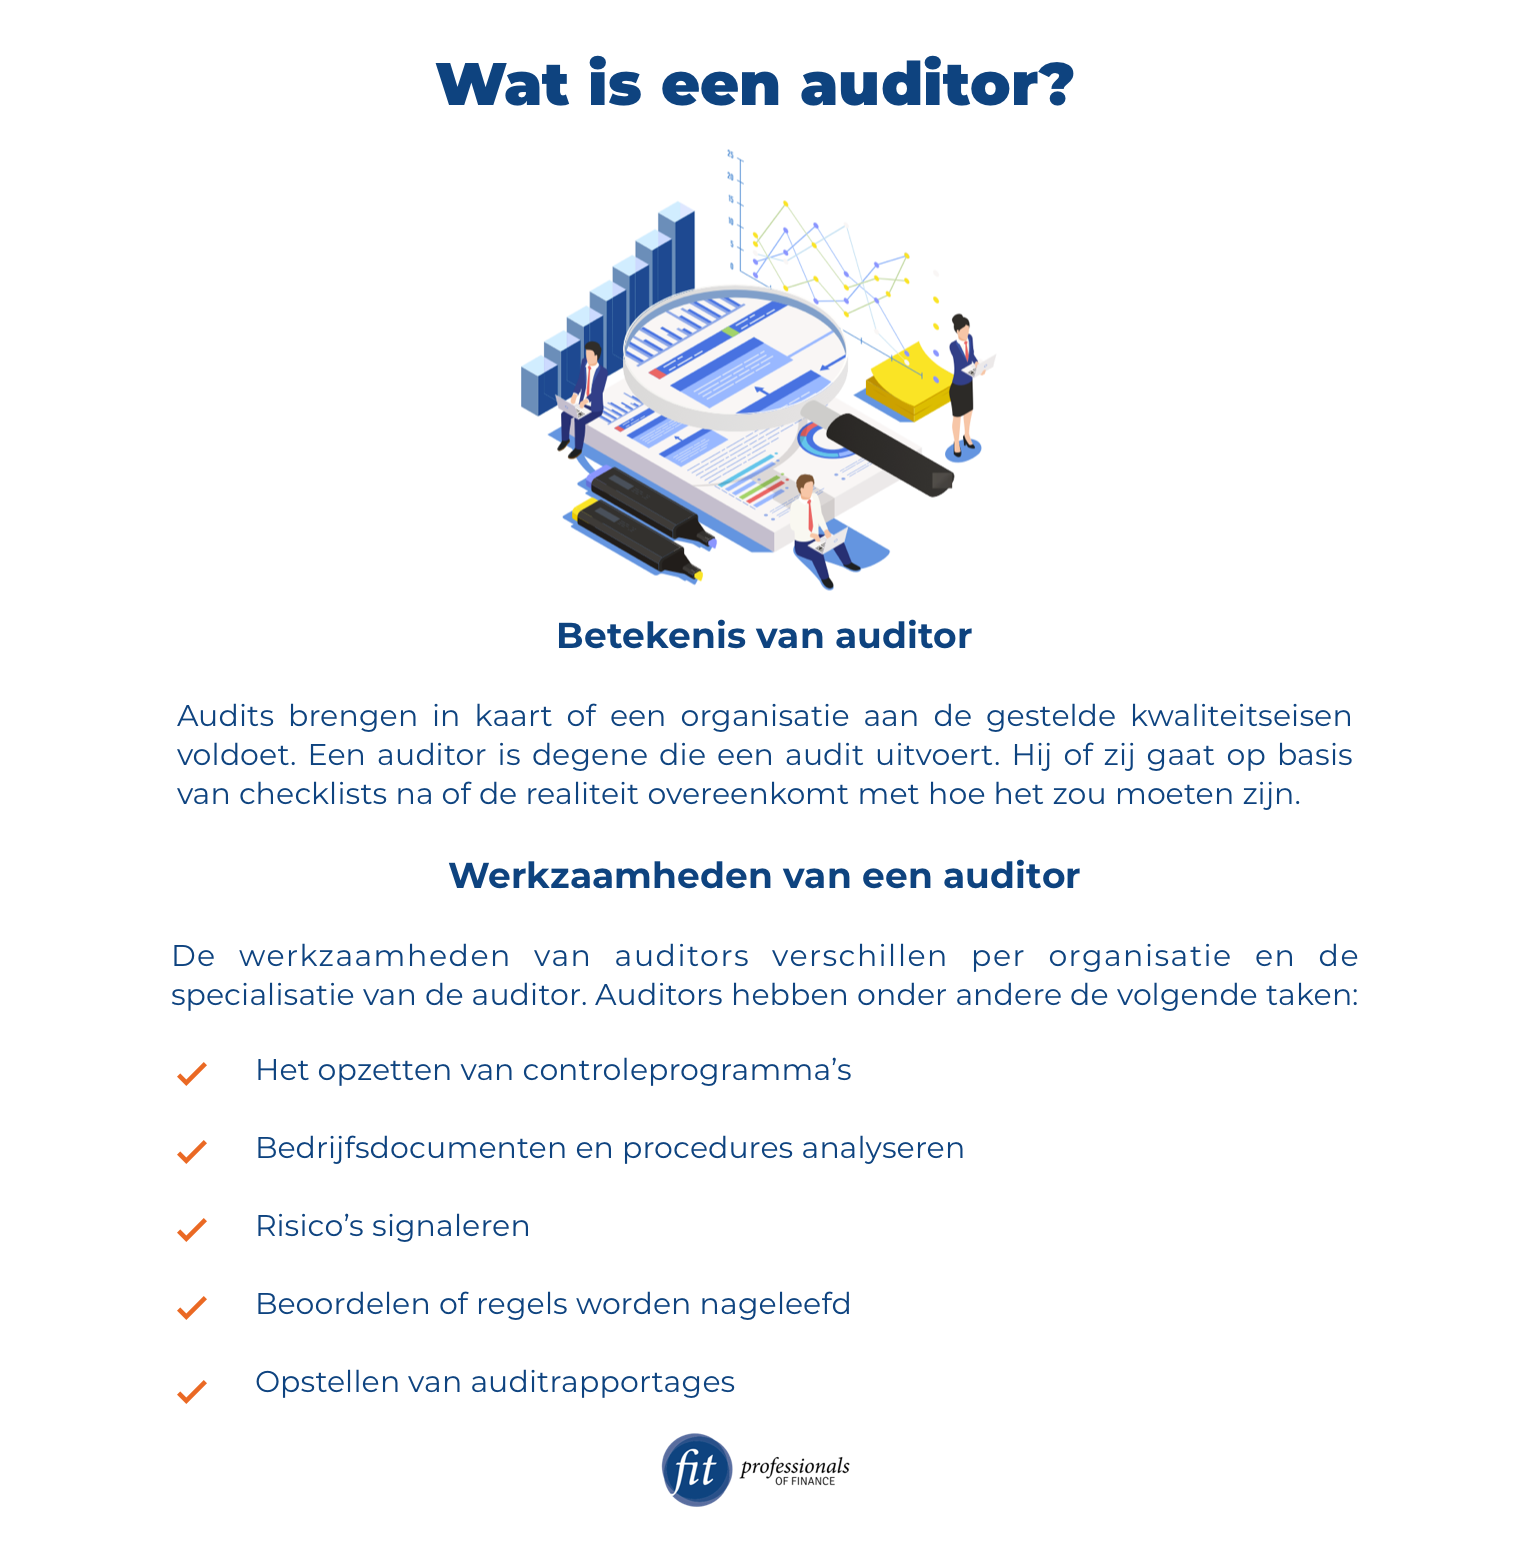 Wat is een auditor?